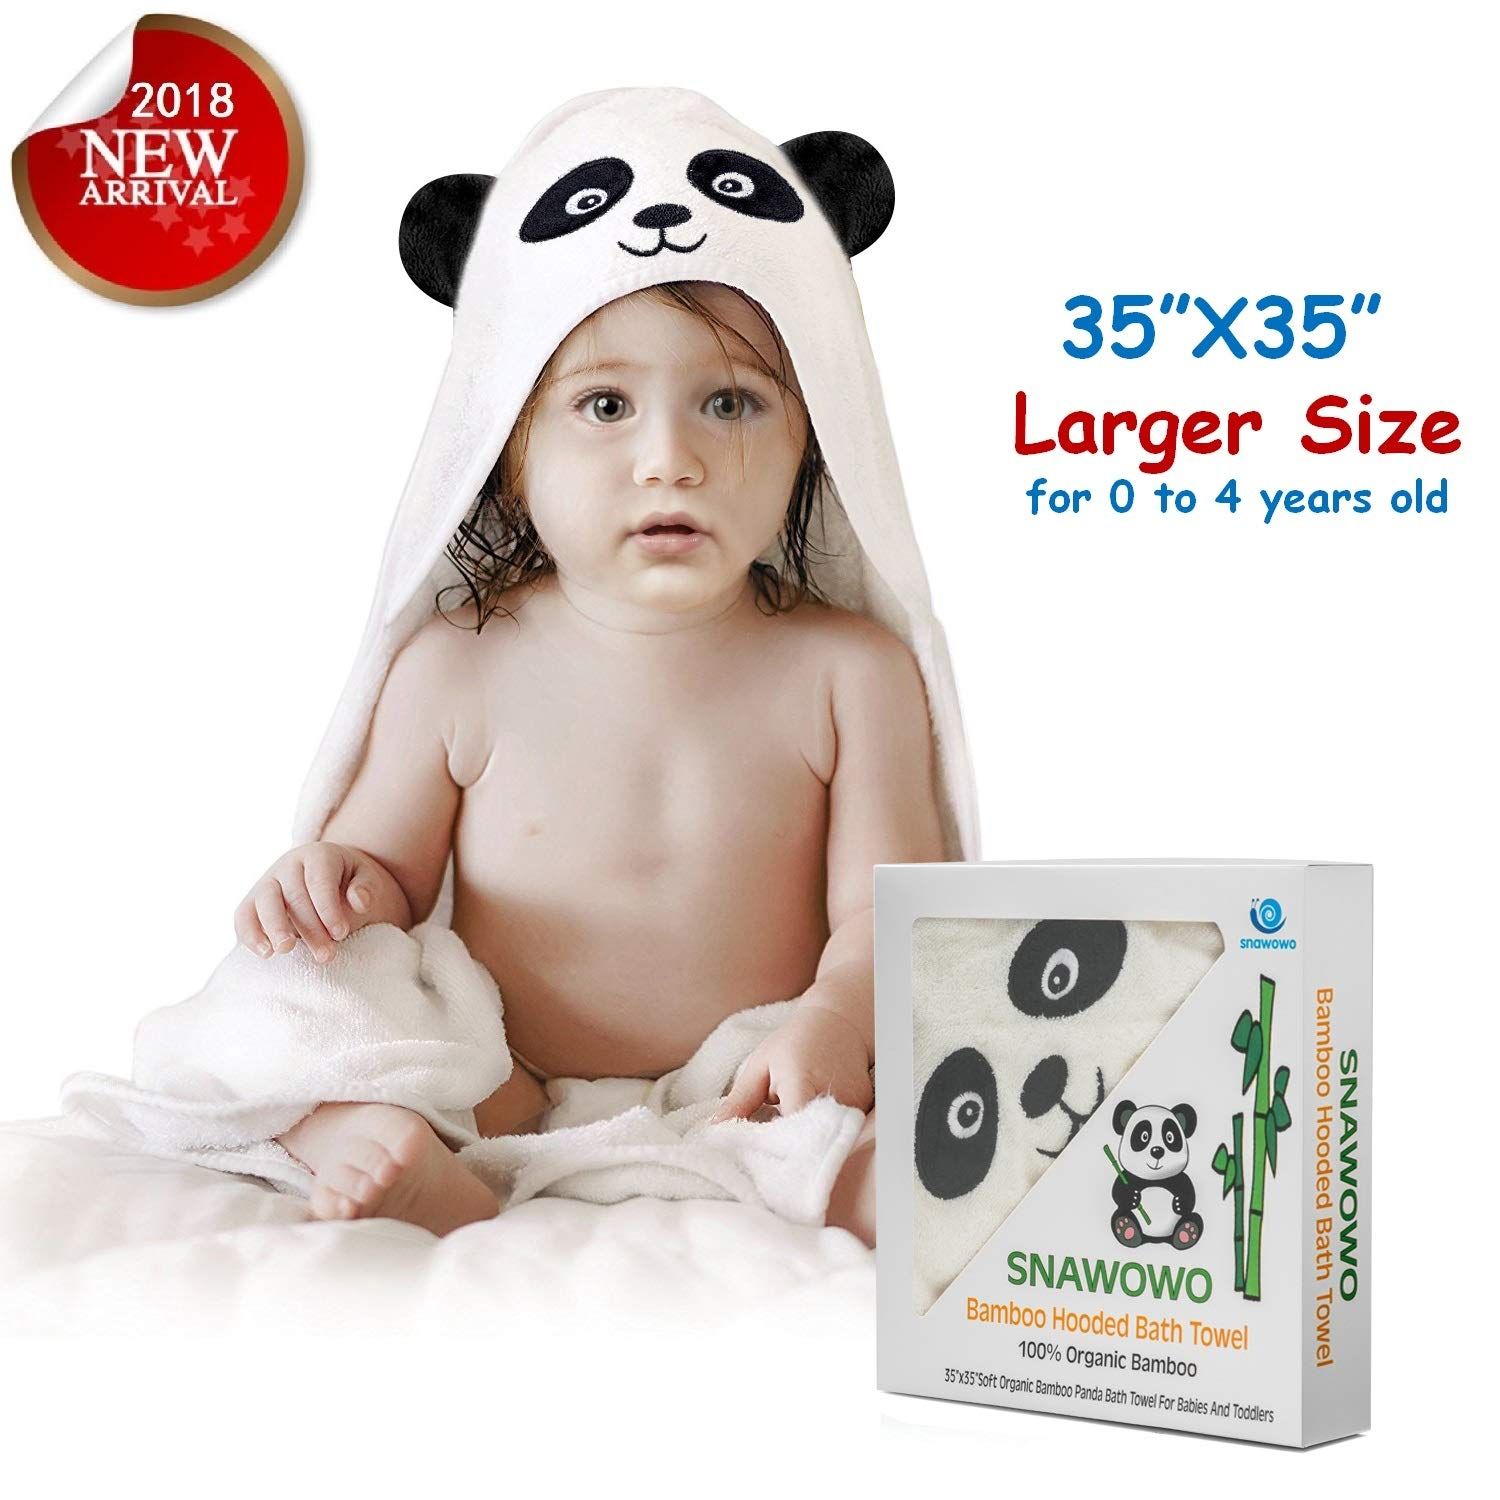 Baby Bath Hooded Towel, Washcloth with Hood, 100% Organic Bamboo, Extra Soft, Absorbent and Hypoallergenic, Perfect Baby Shower Gift, Cute Panda Style, for Newborns Infants Toddlers Kids Boys Girls SNAWOWO